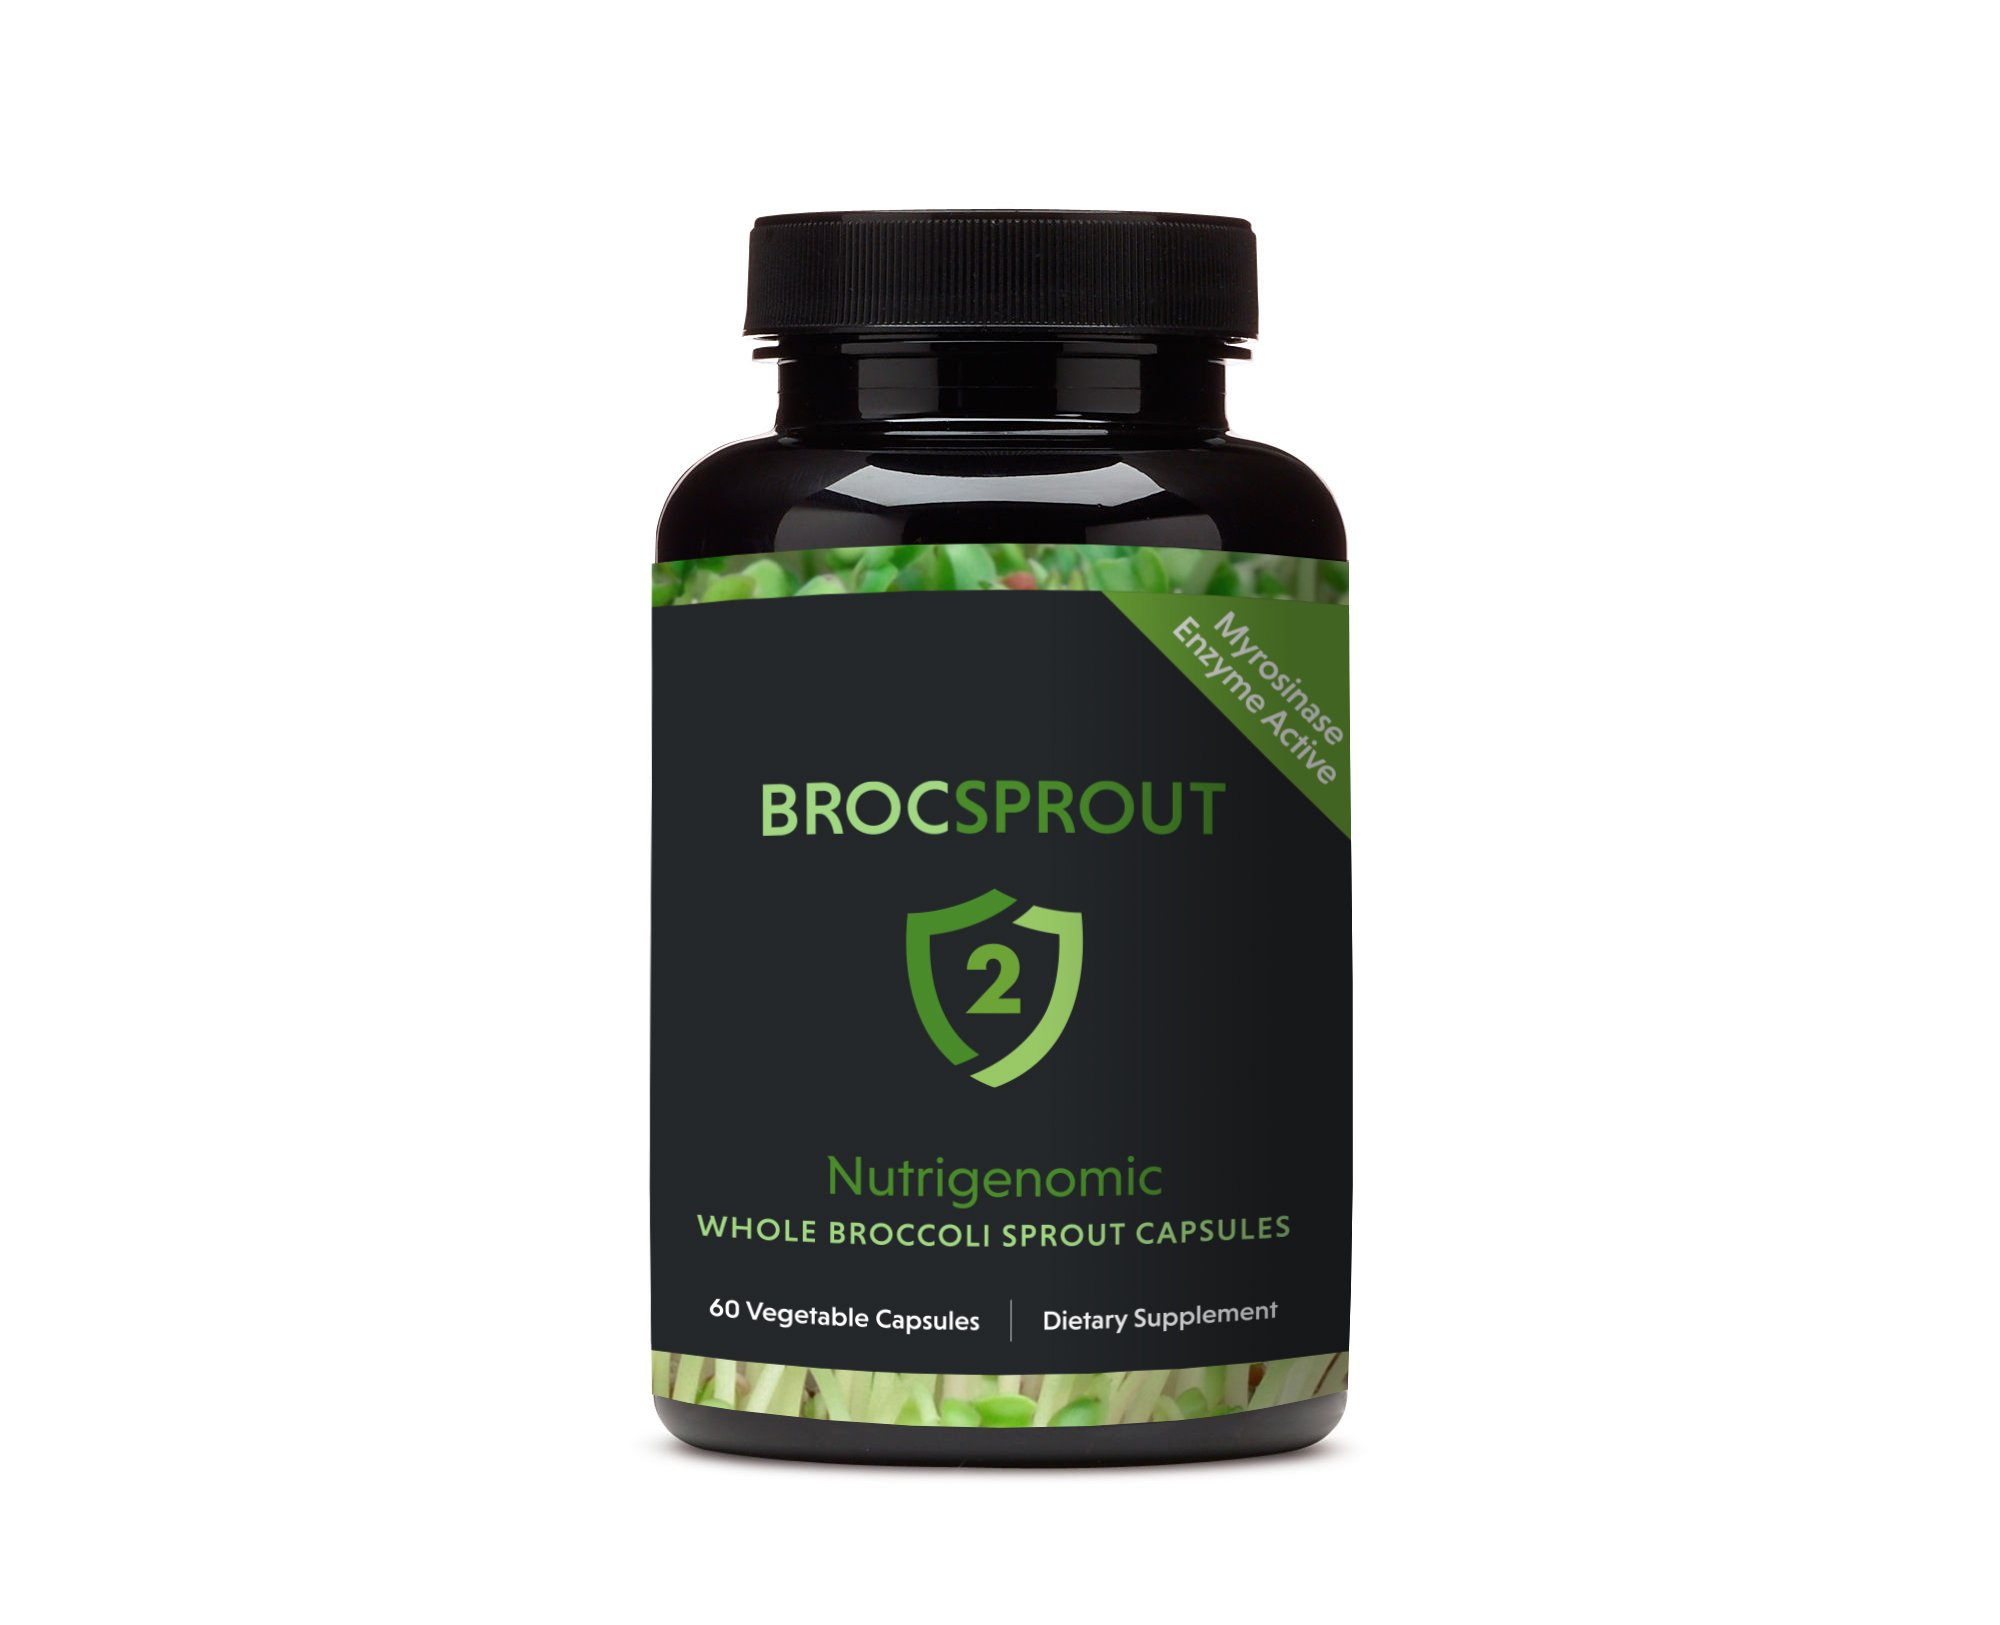 BROC SPROUT 2 - Whole Broccoli Sprout Capsules by BROC SPROUT 2